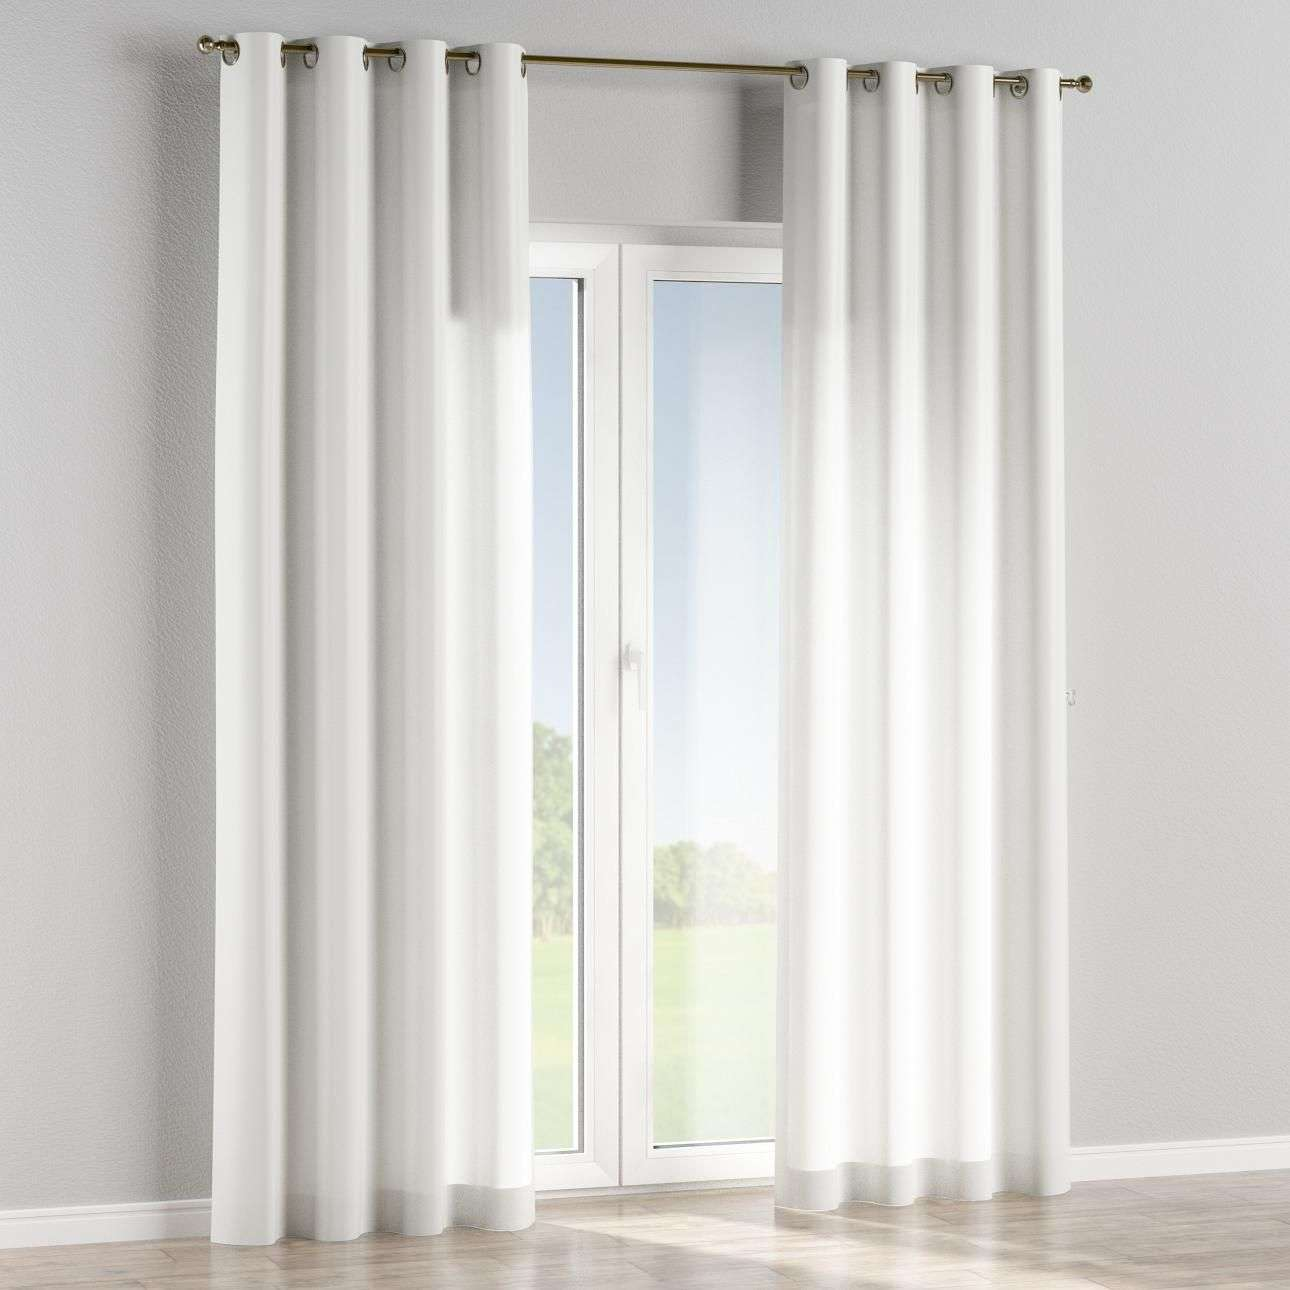 Eyelet curtains in collection Bristol, fabric: 125-32